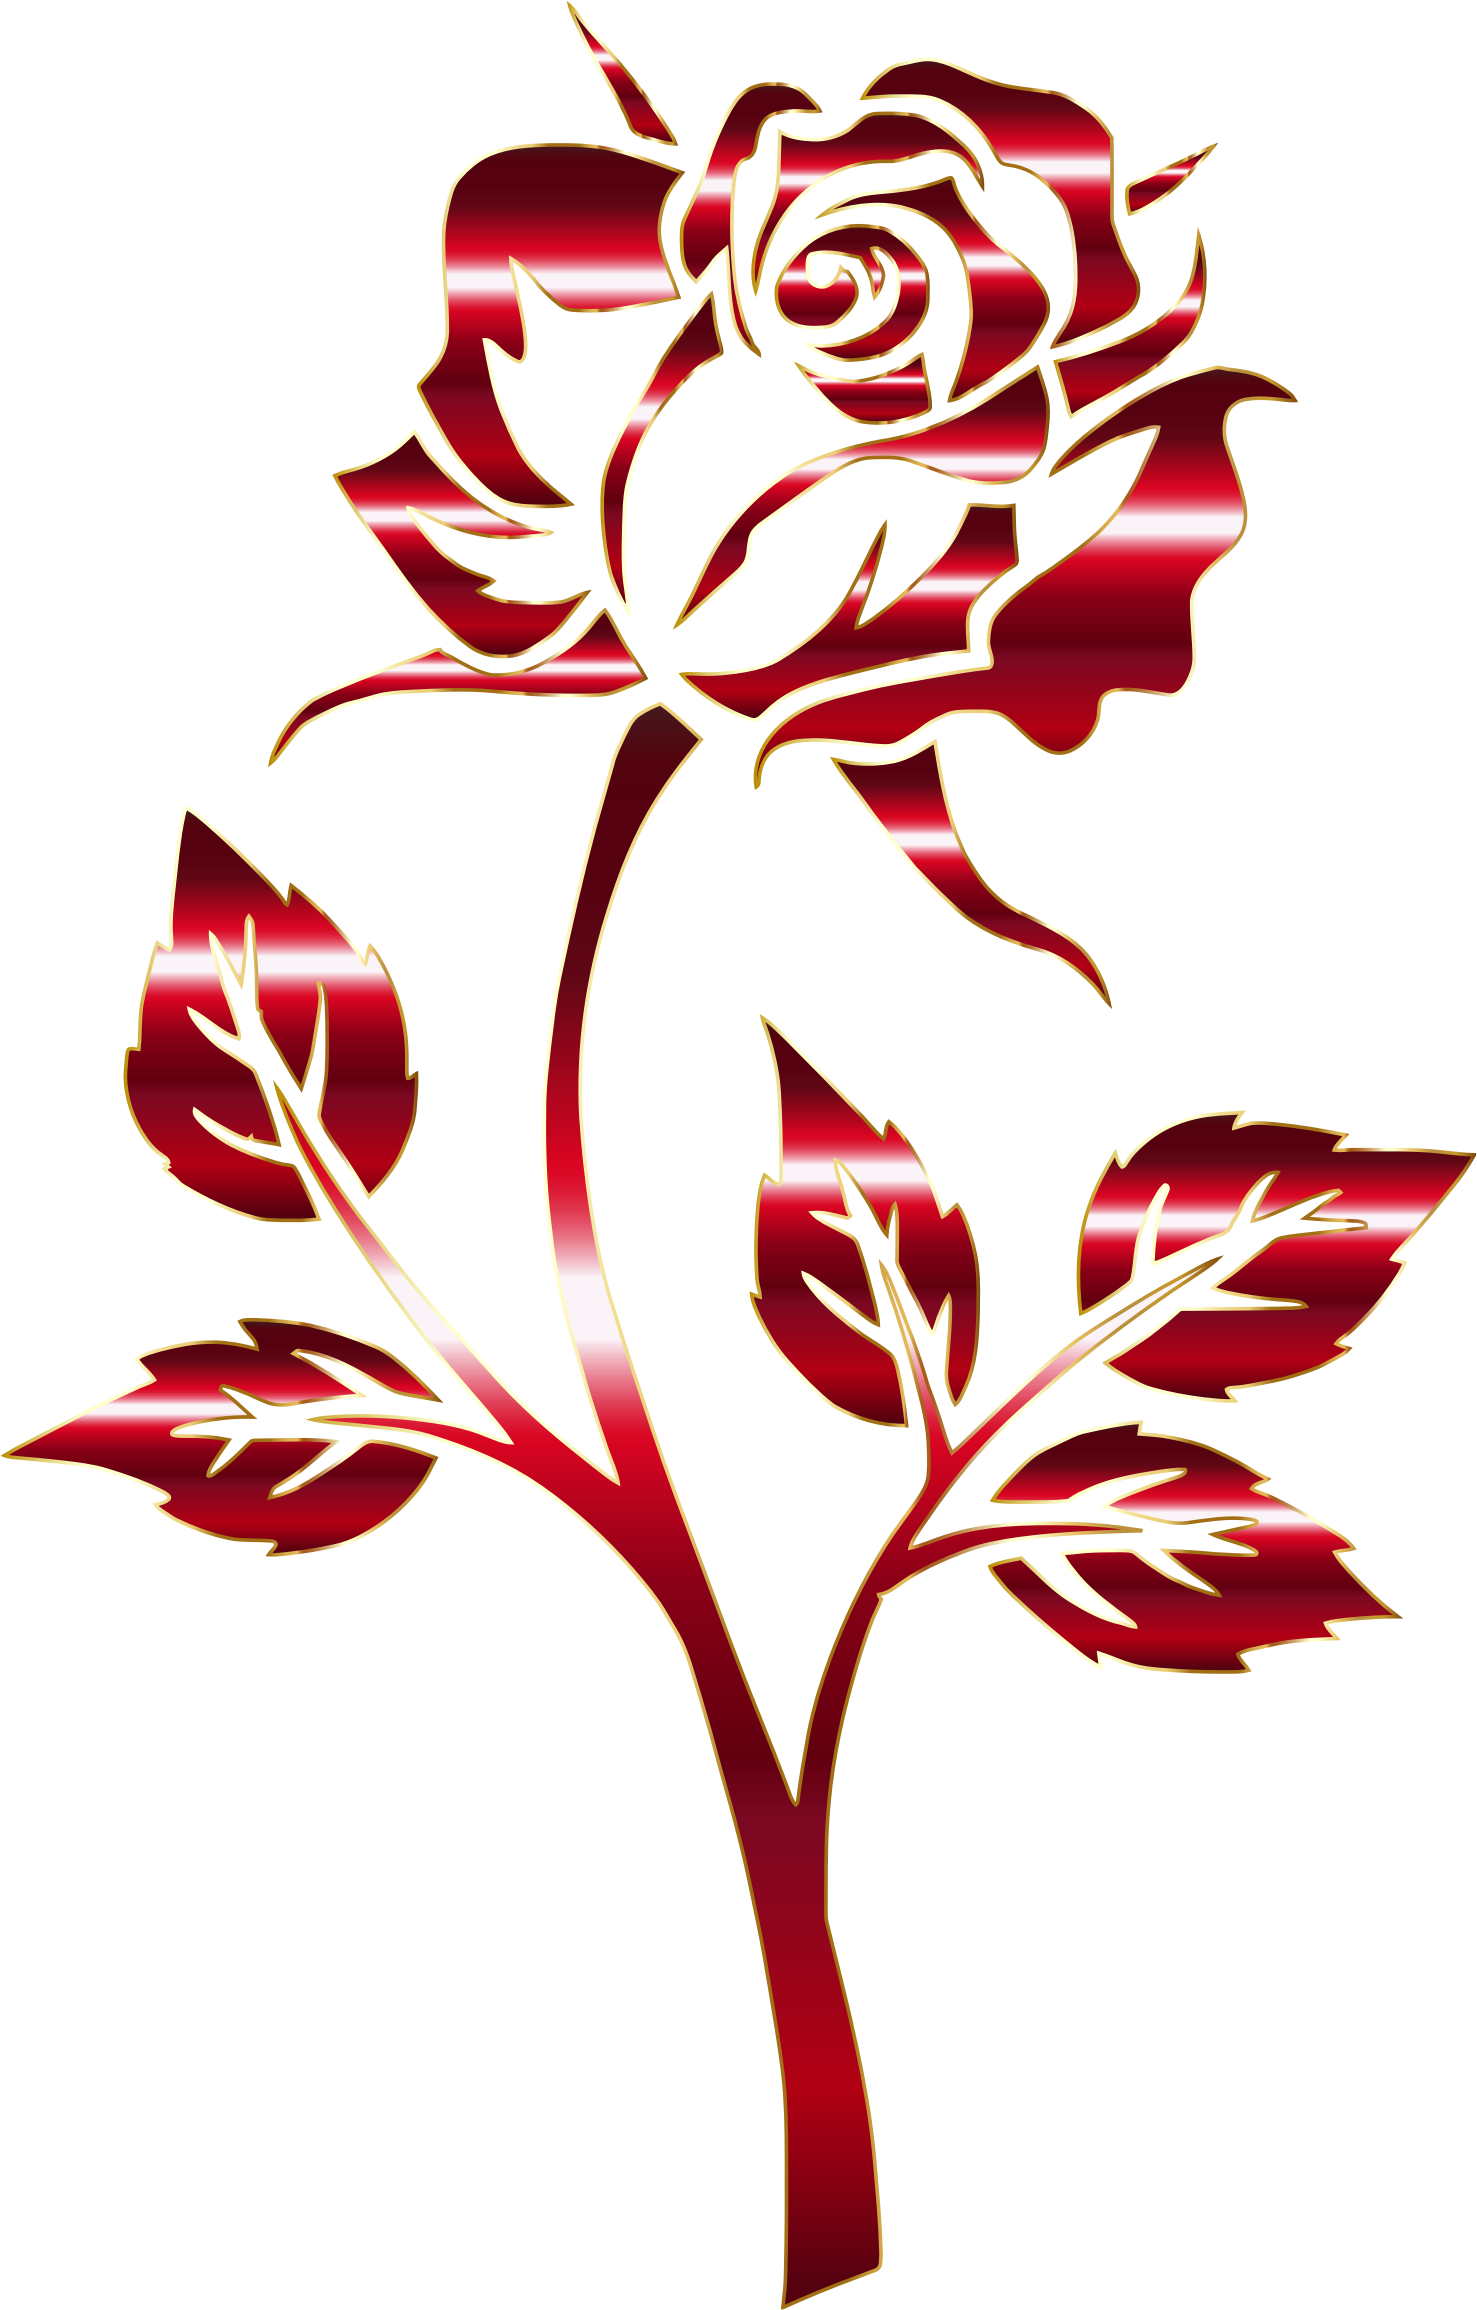 Crimson Rose Silhouette Variation 2 No Background by GDJ